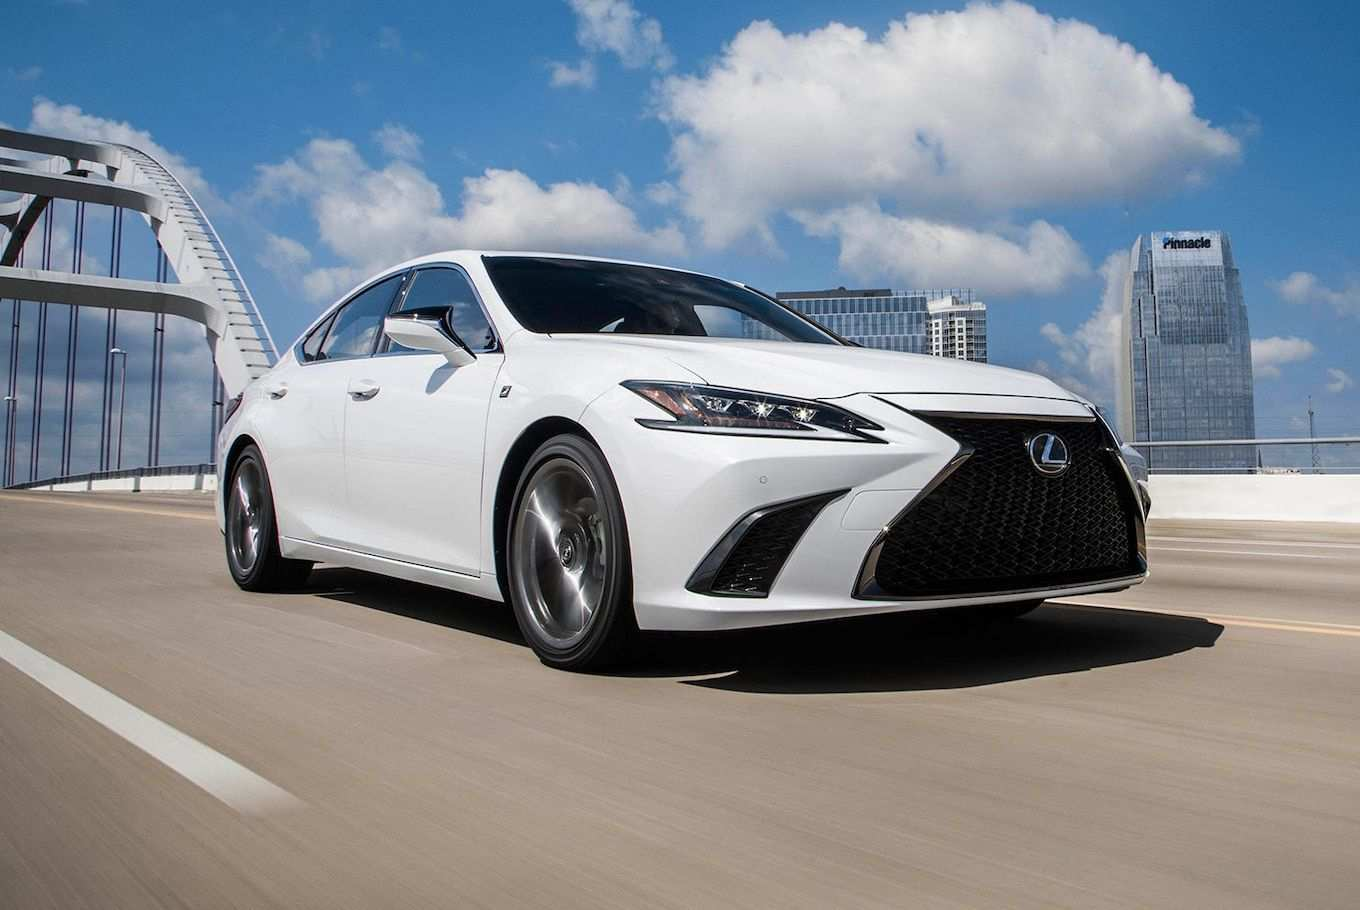 67 A When Lexus 2019 Come Out Price